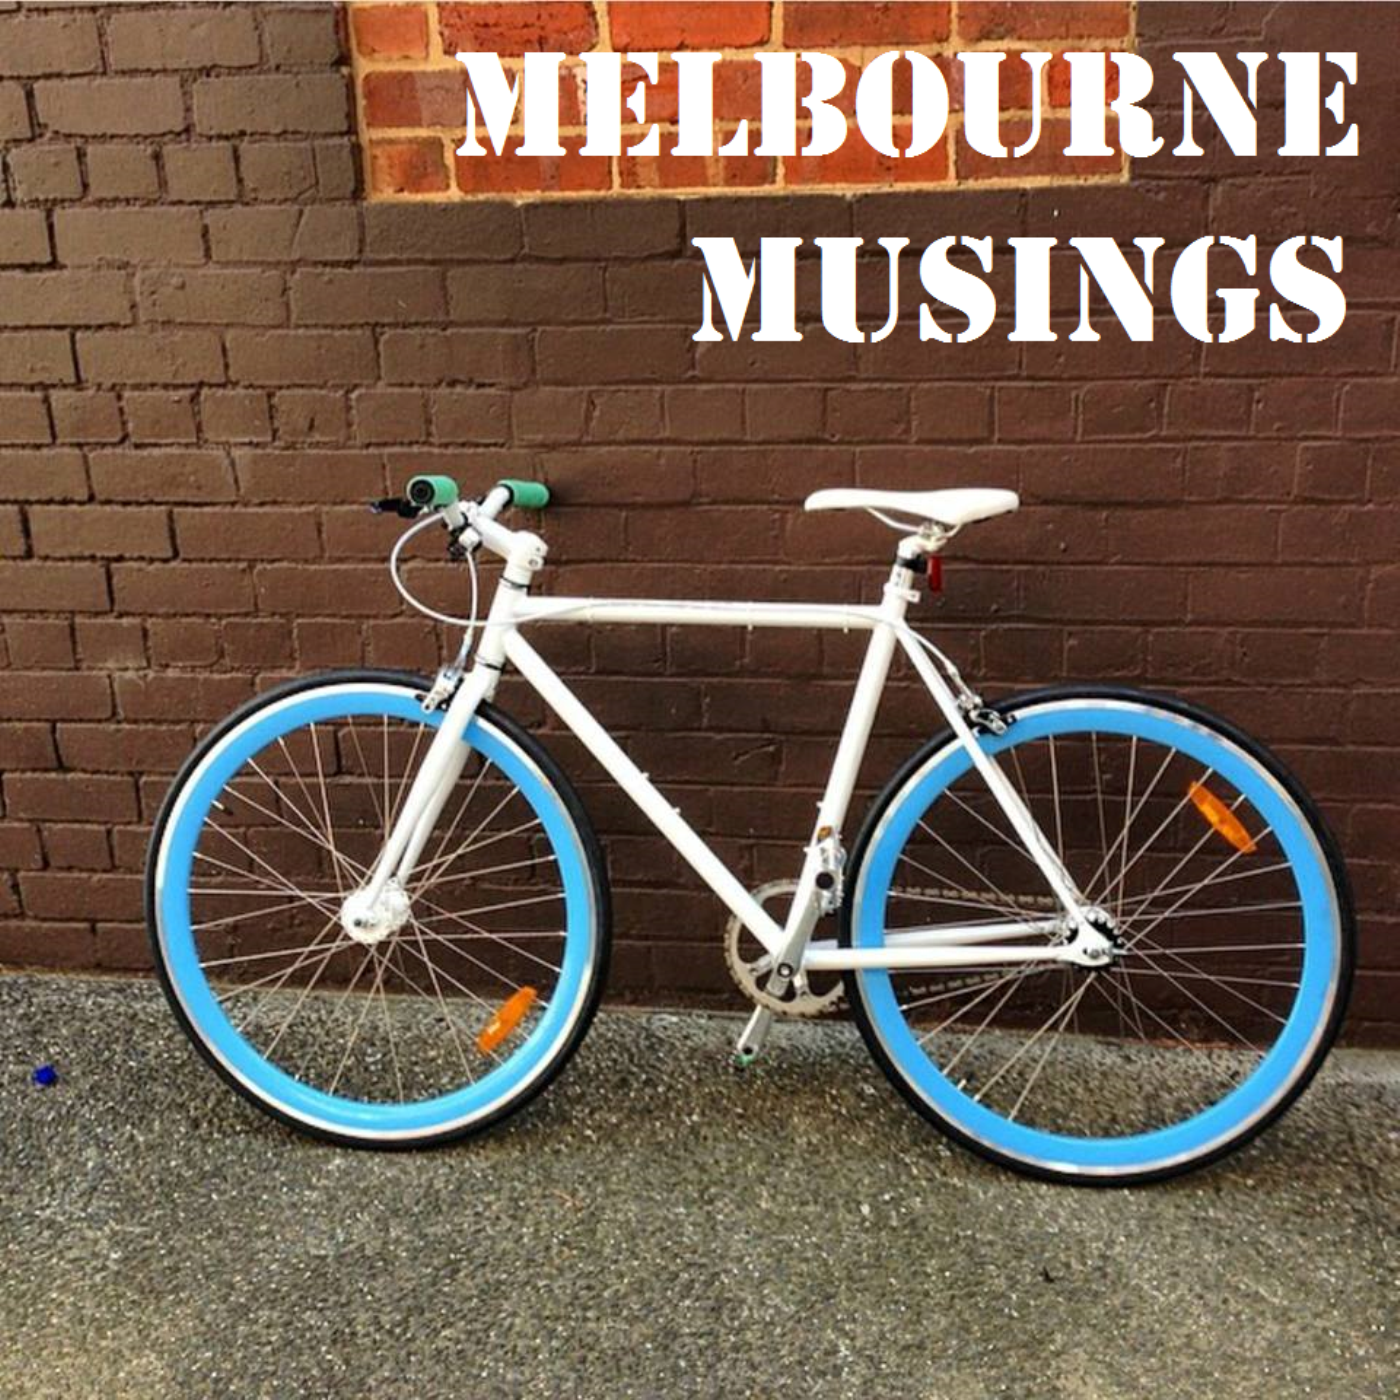 Melbourne Musings Episode 82 show art